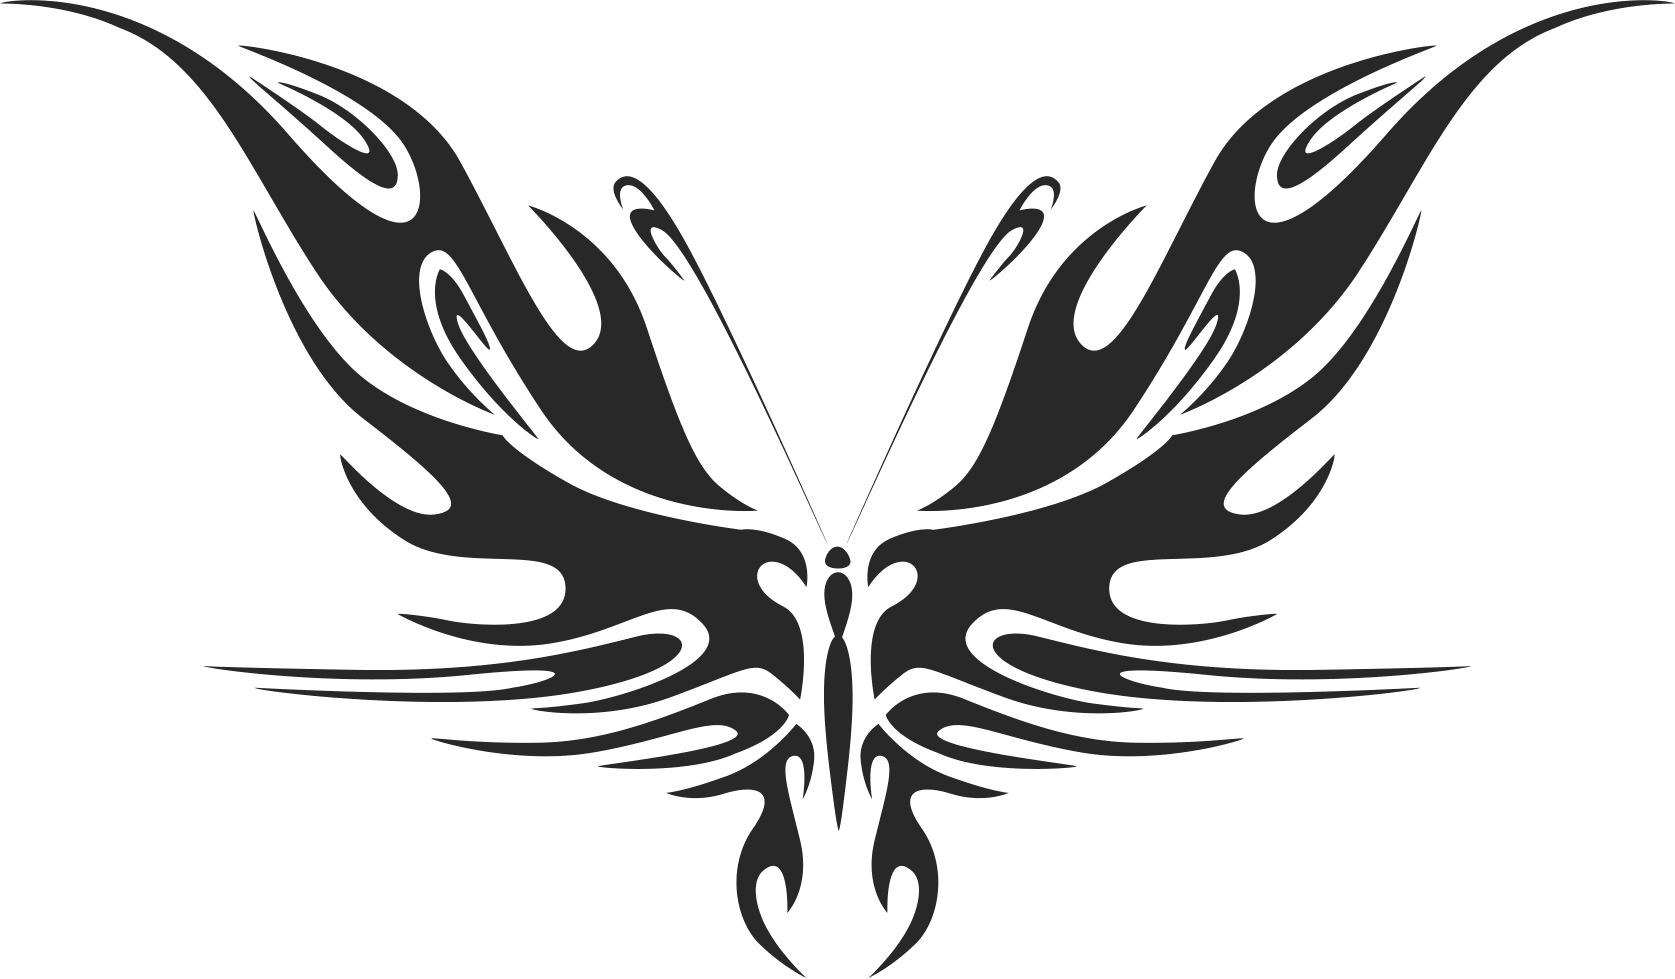 Tattoo Tribal Butterfly Plasma Art Free DXF File